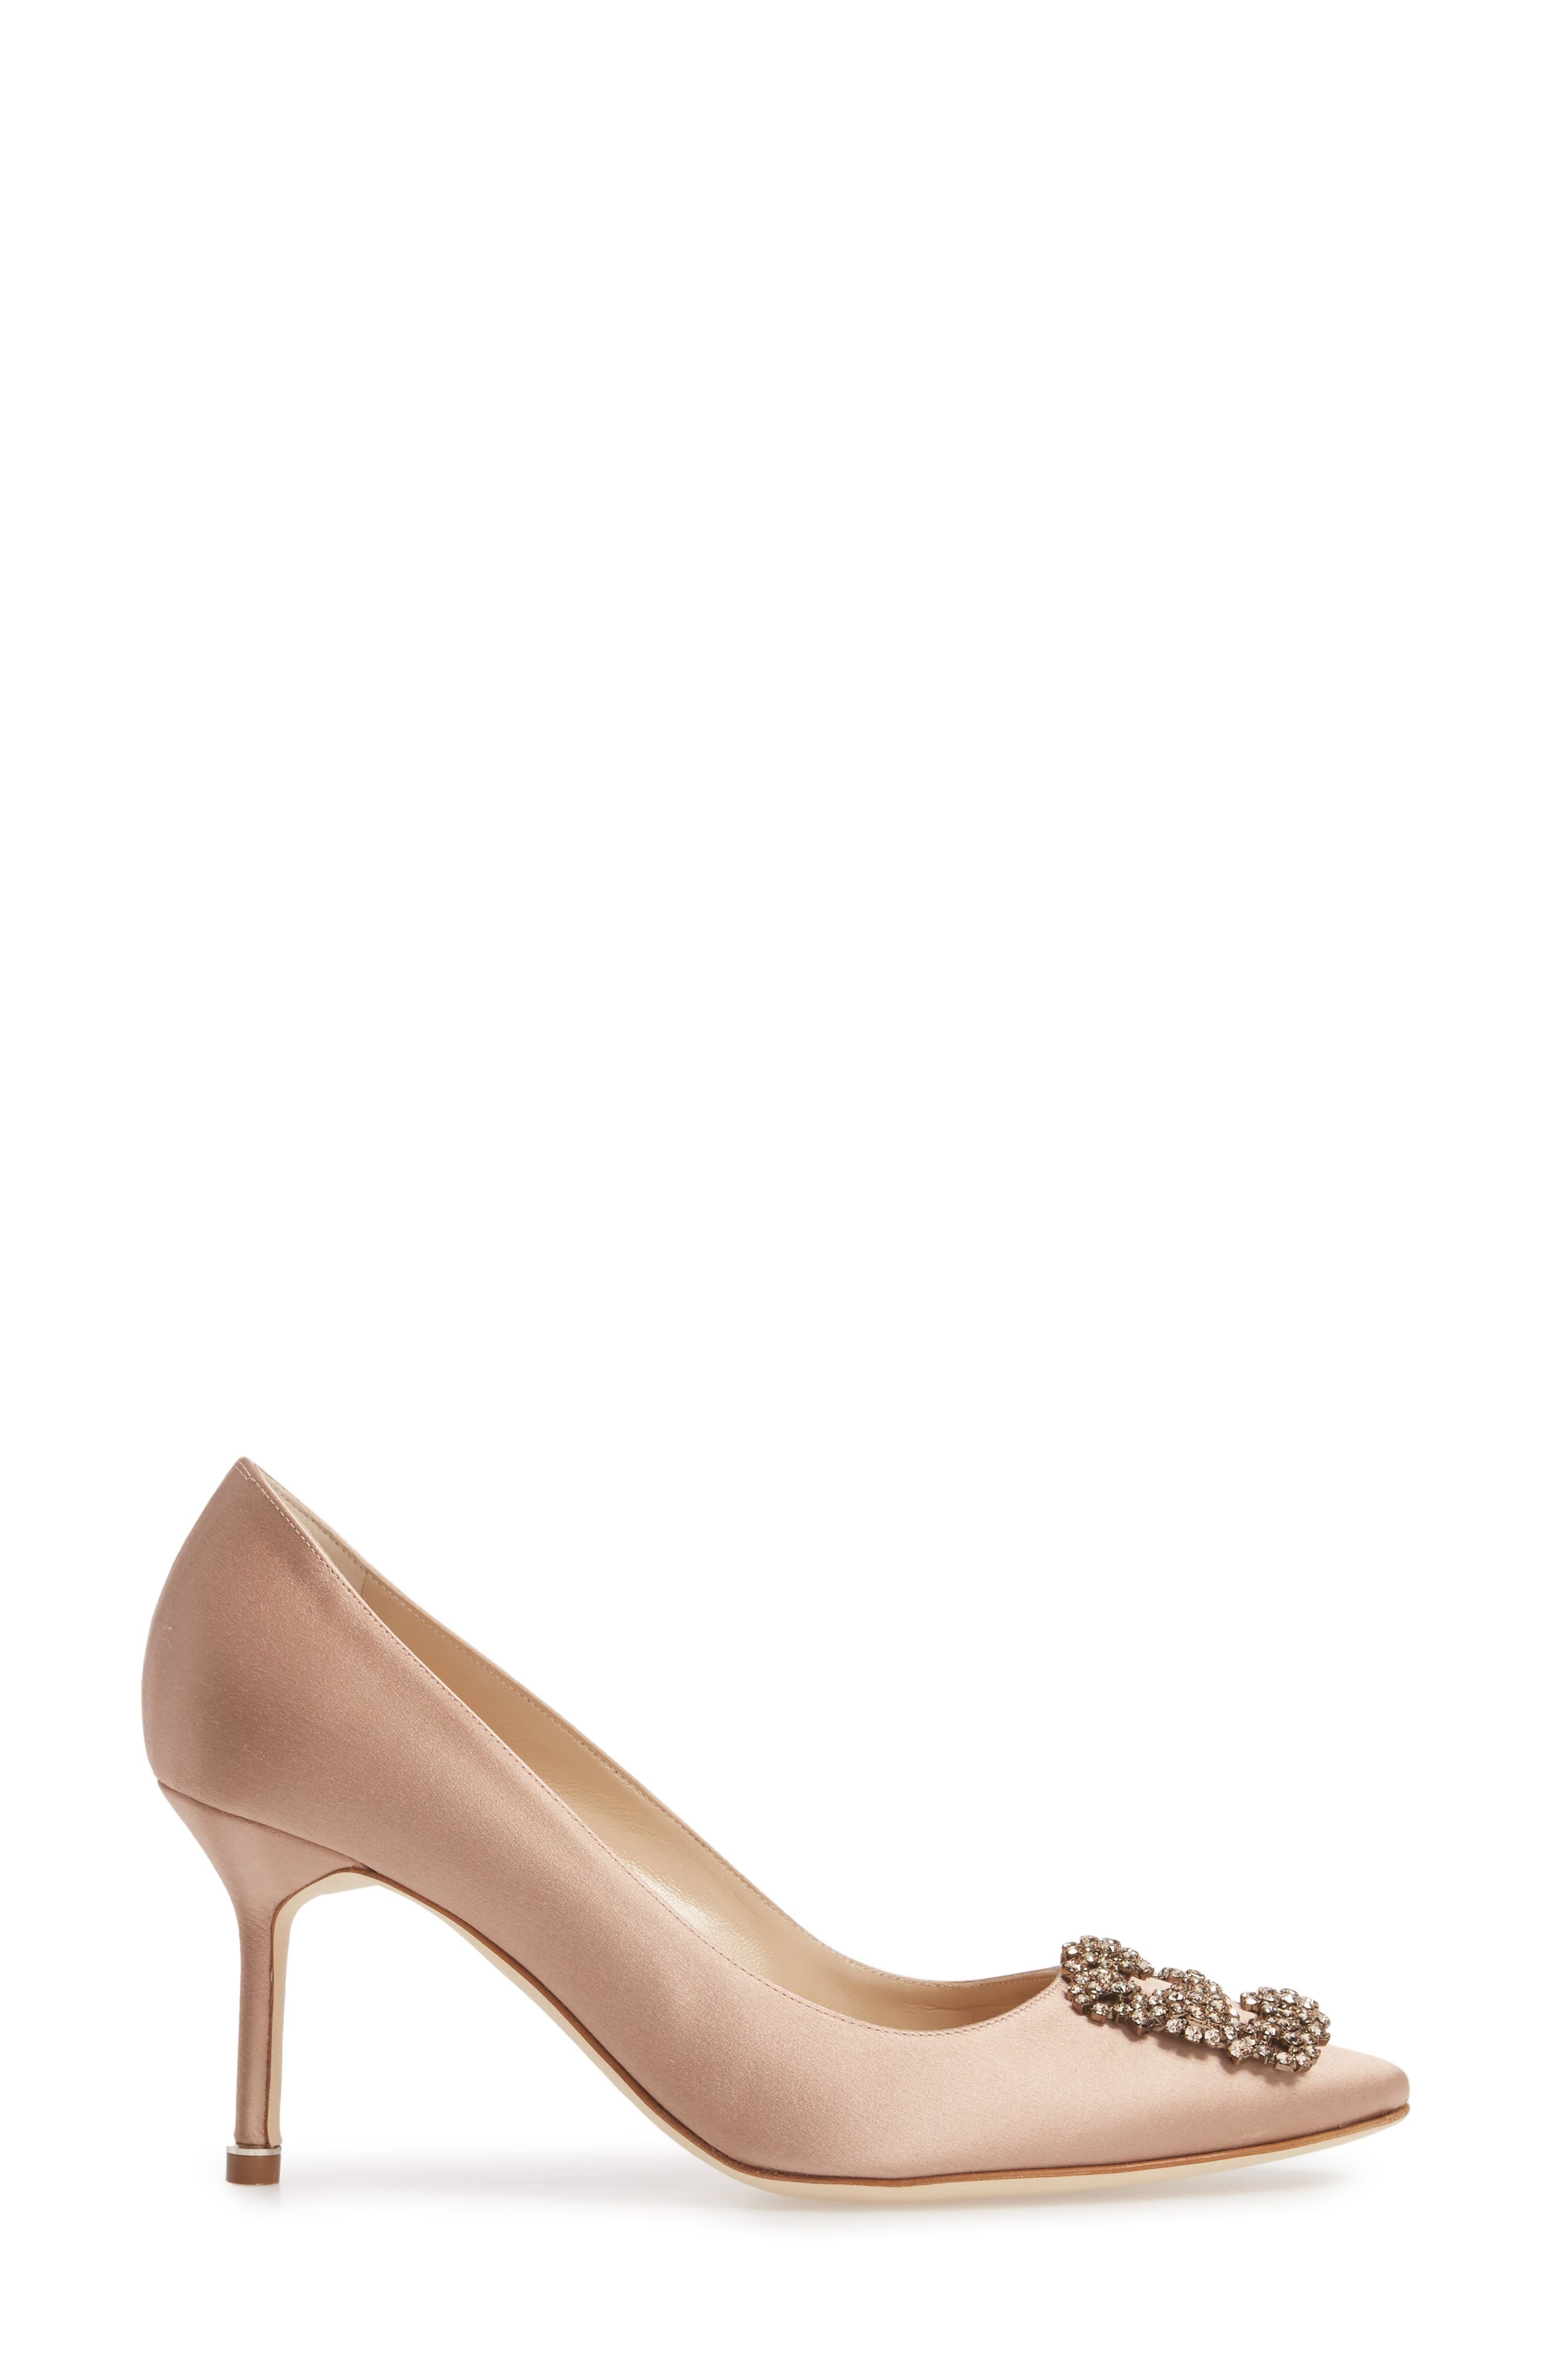 'Hangisi' Pointy Toe Pump,                             Alternate thumbnail 3, color,                             FLESH SATIN